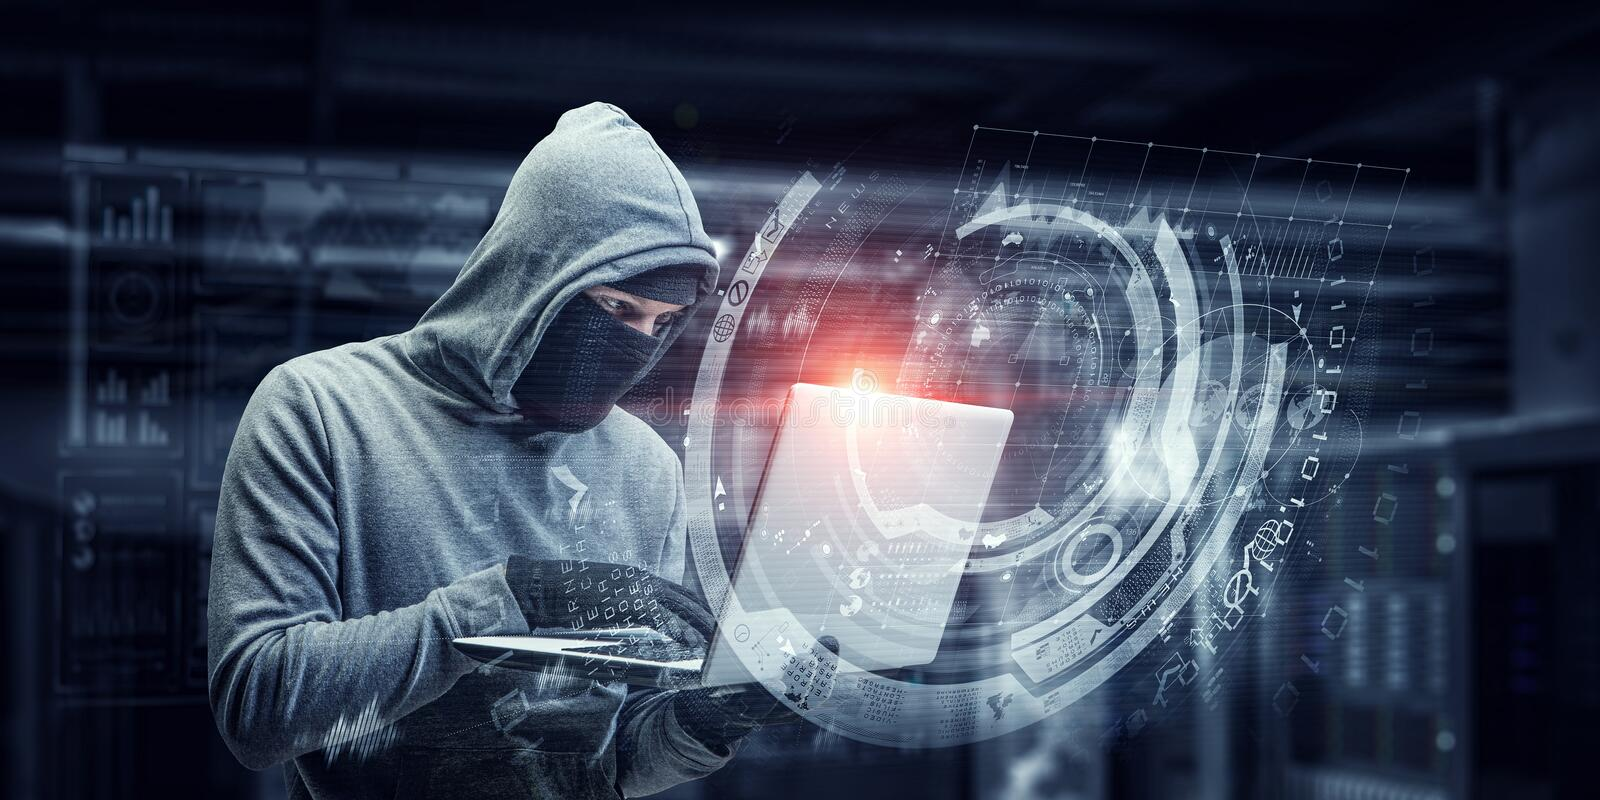 Network security and privacy crime. Mixed media. Computer hacker in hoodie and mask stealing data from laptop. Mixed media royalty free stock image